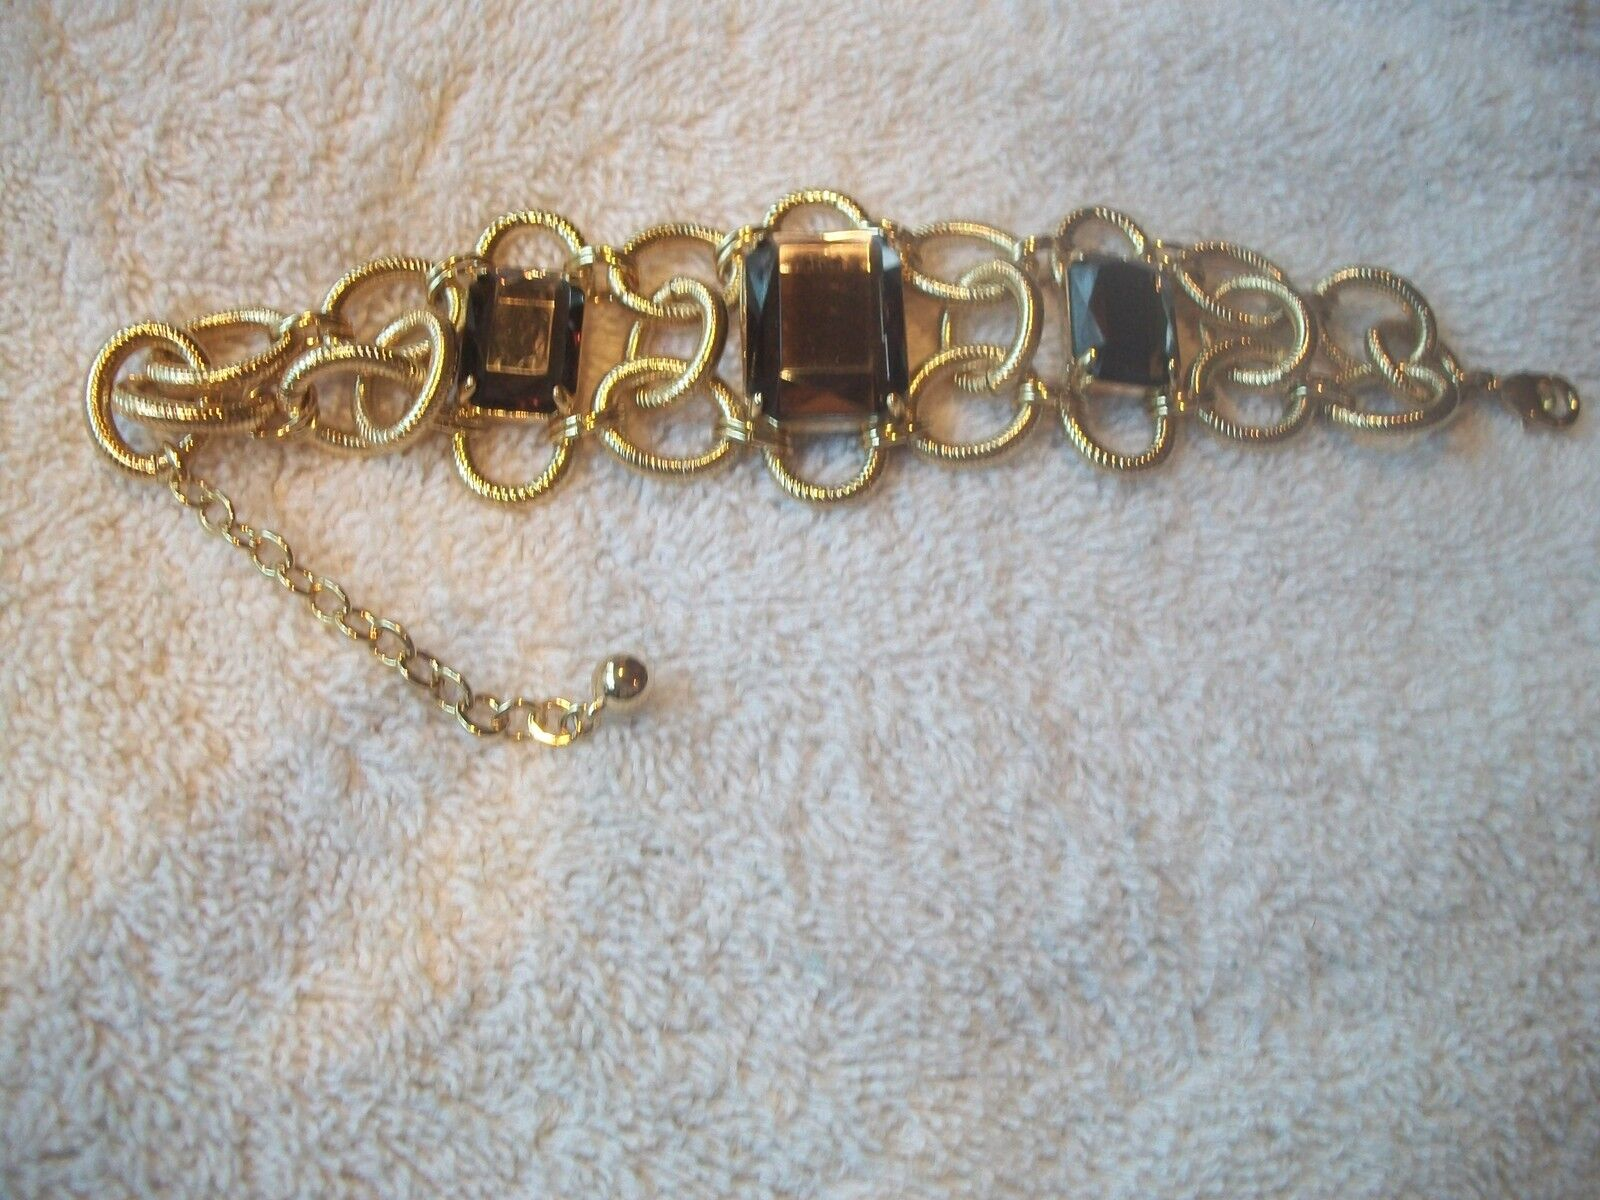 NOLAN MILLER Bracelet WOW FACTOR Textured goldtone Brown Crystal NEW Free Ship